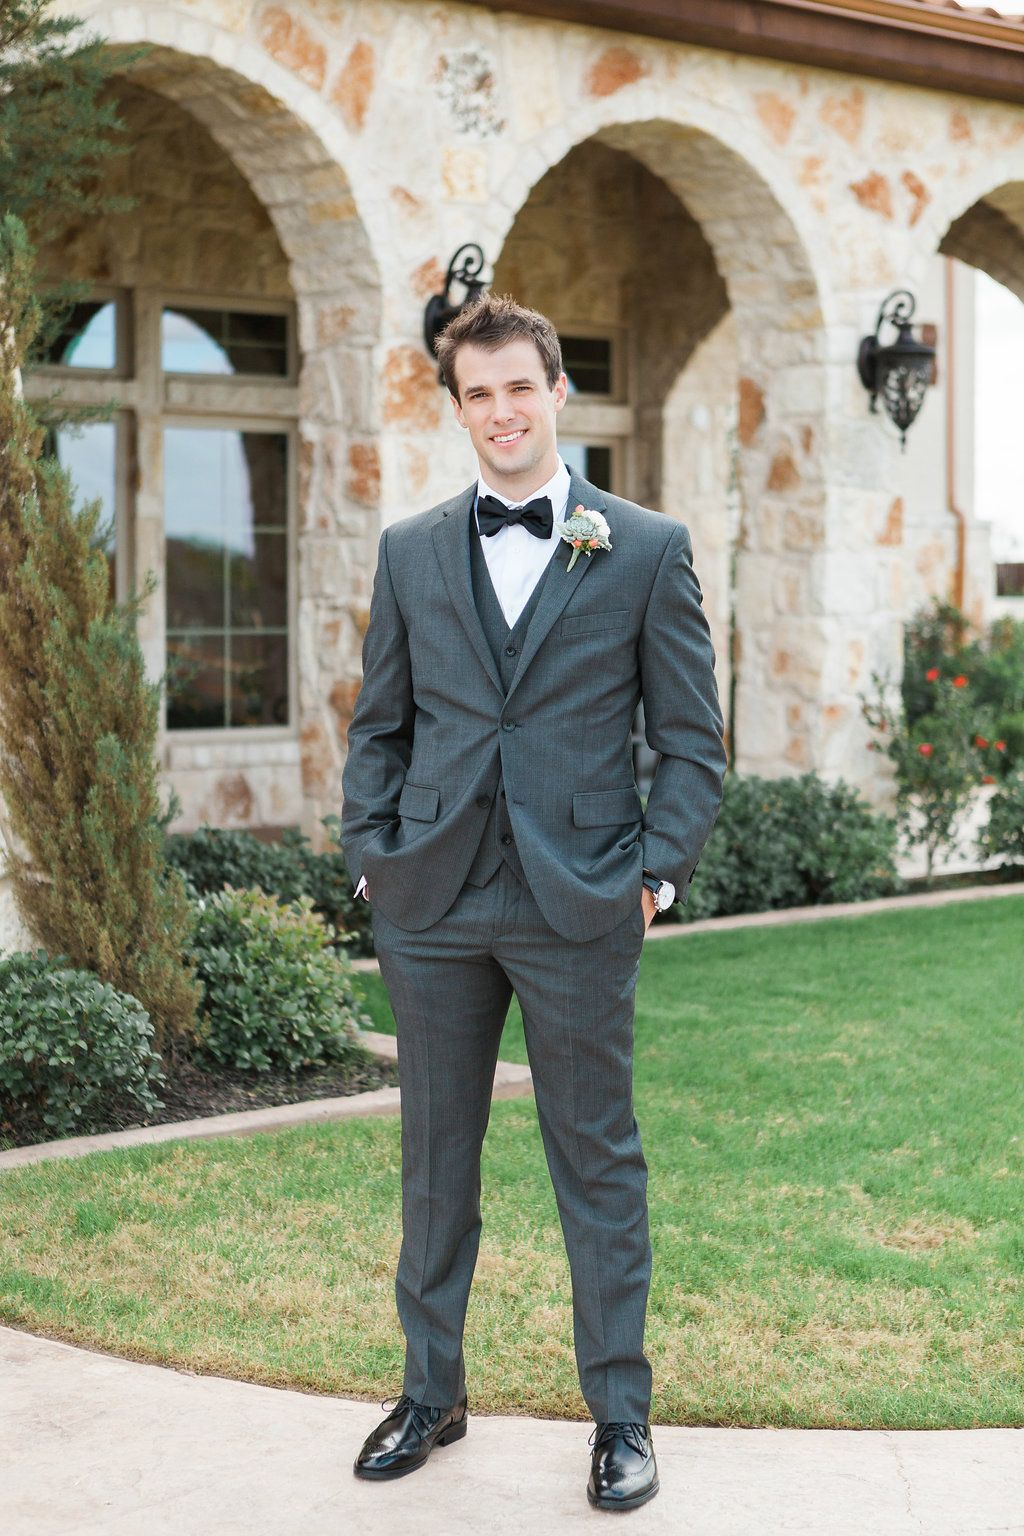 Such a handsome groom in charcoal gray! Love his gray suit and ...